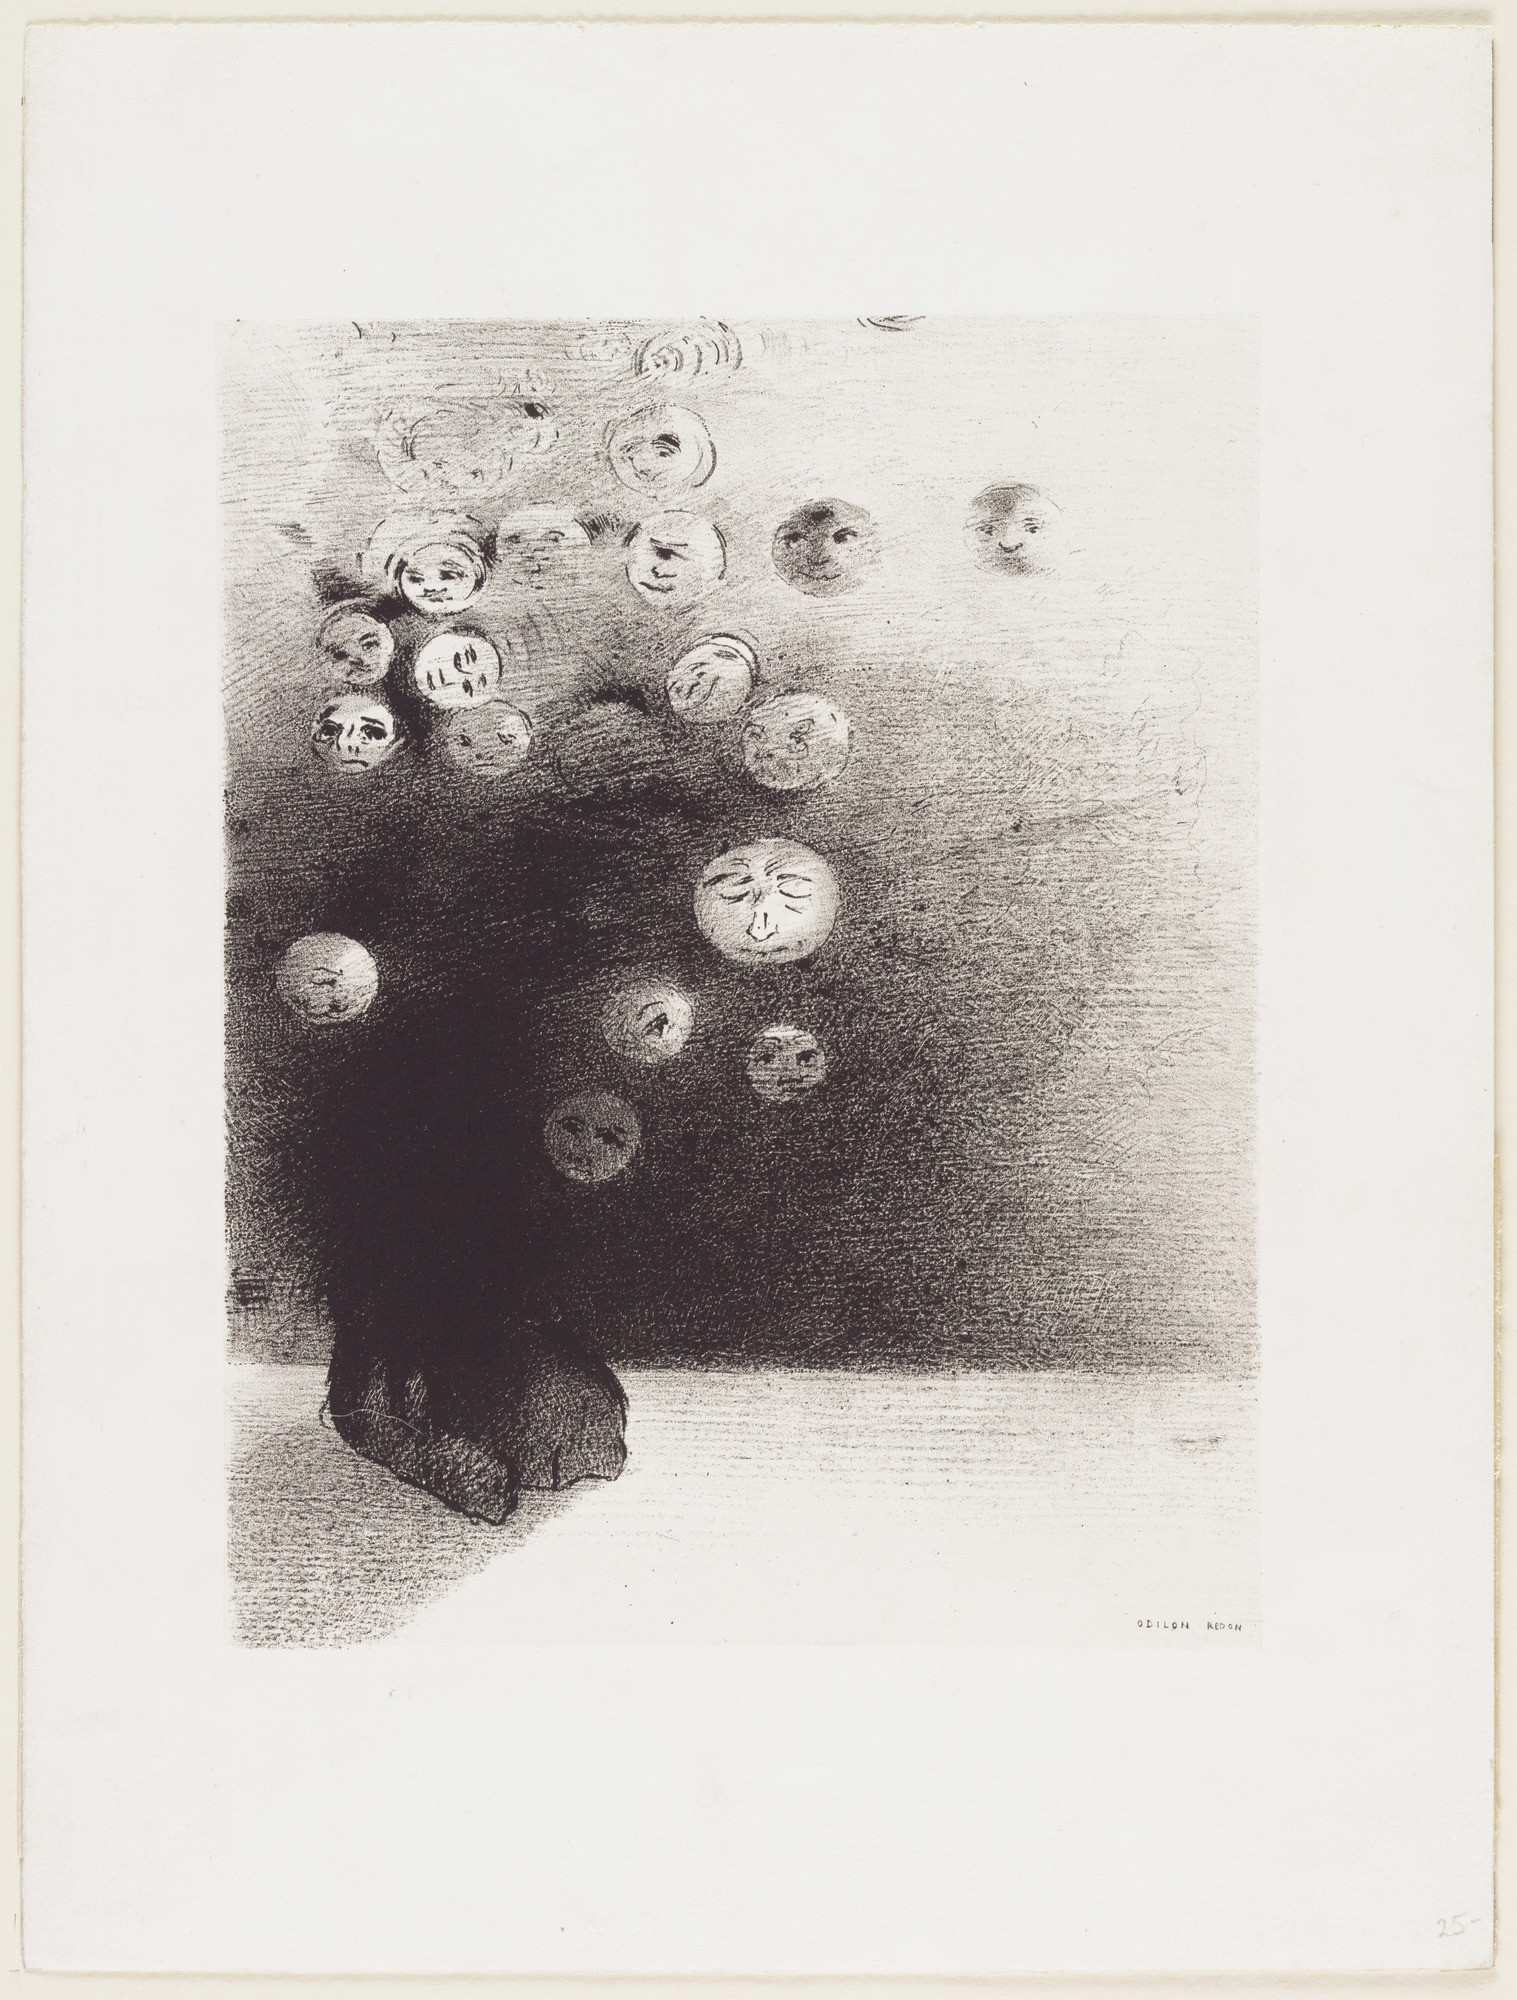 odilon redon vase of flowers of the collection moma with regard to w1siziisijk3mdc3il0swyjwiiwiy29udmvydcisii1yzxnpemugmjawmhgymdawxhuwmdnlil1d